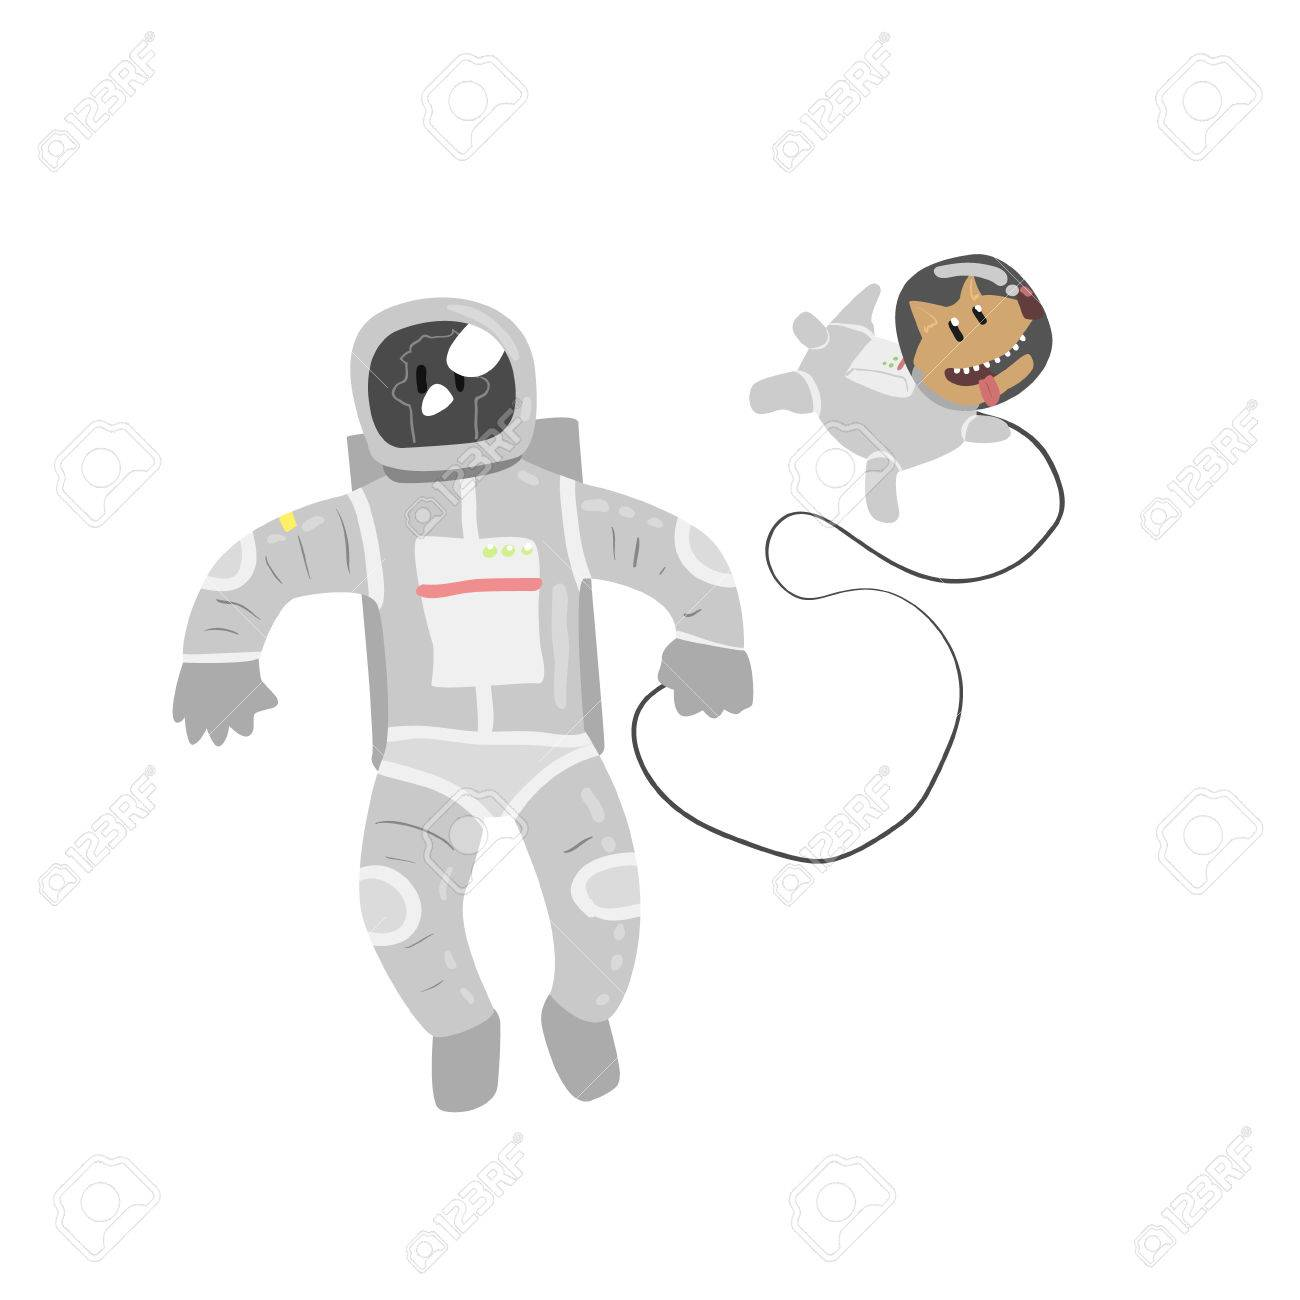 1300x1300 Astronaut In Space With Dog Flat Isolated Vector Simple Drawing